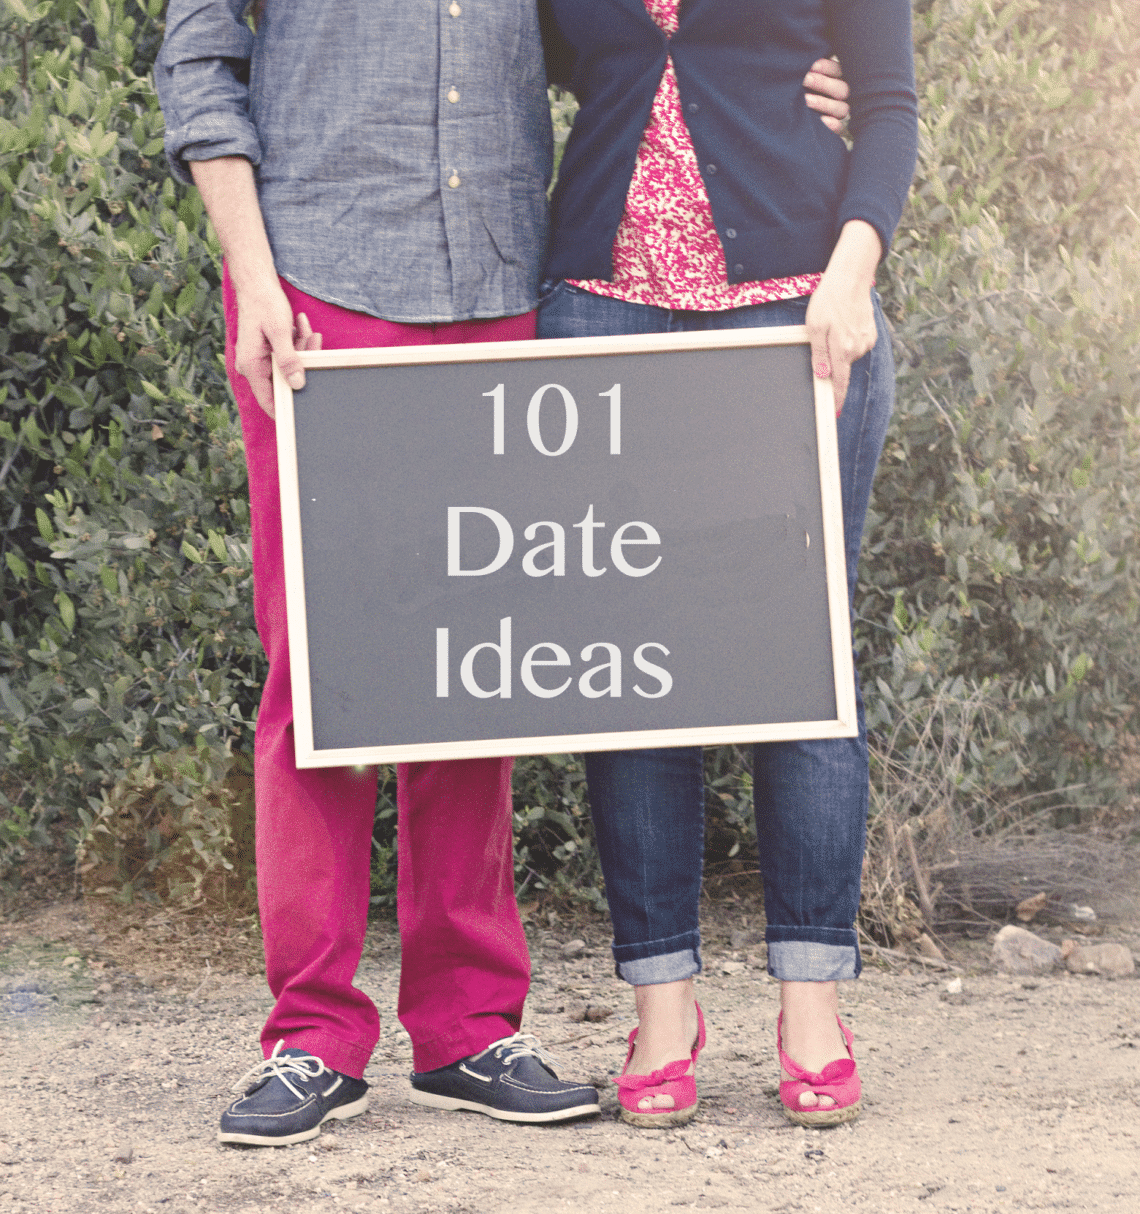 Exciting date ideas